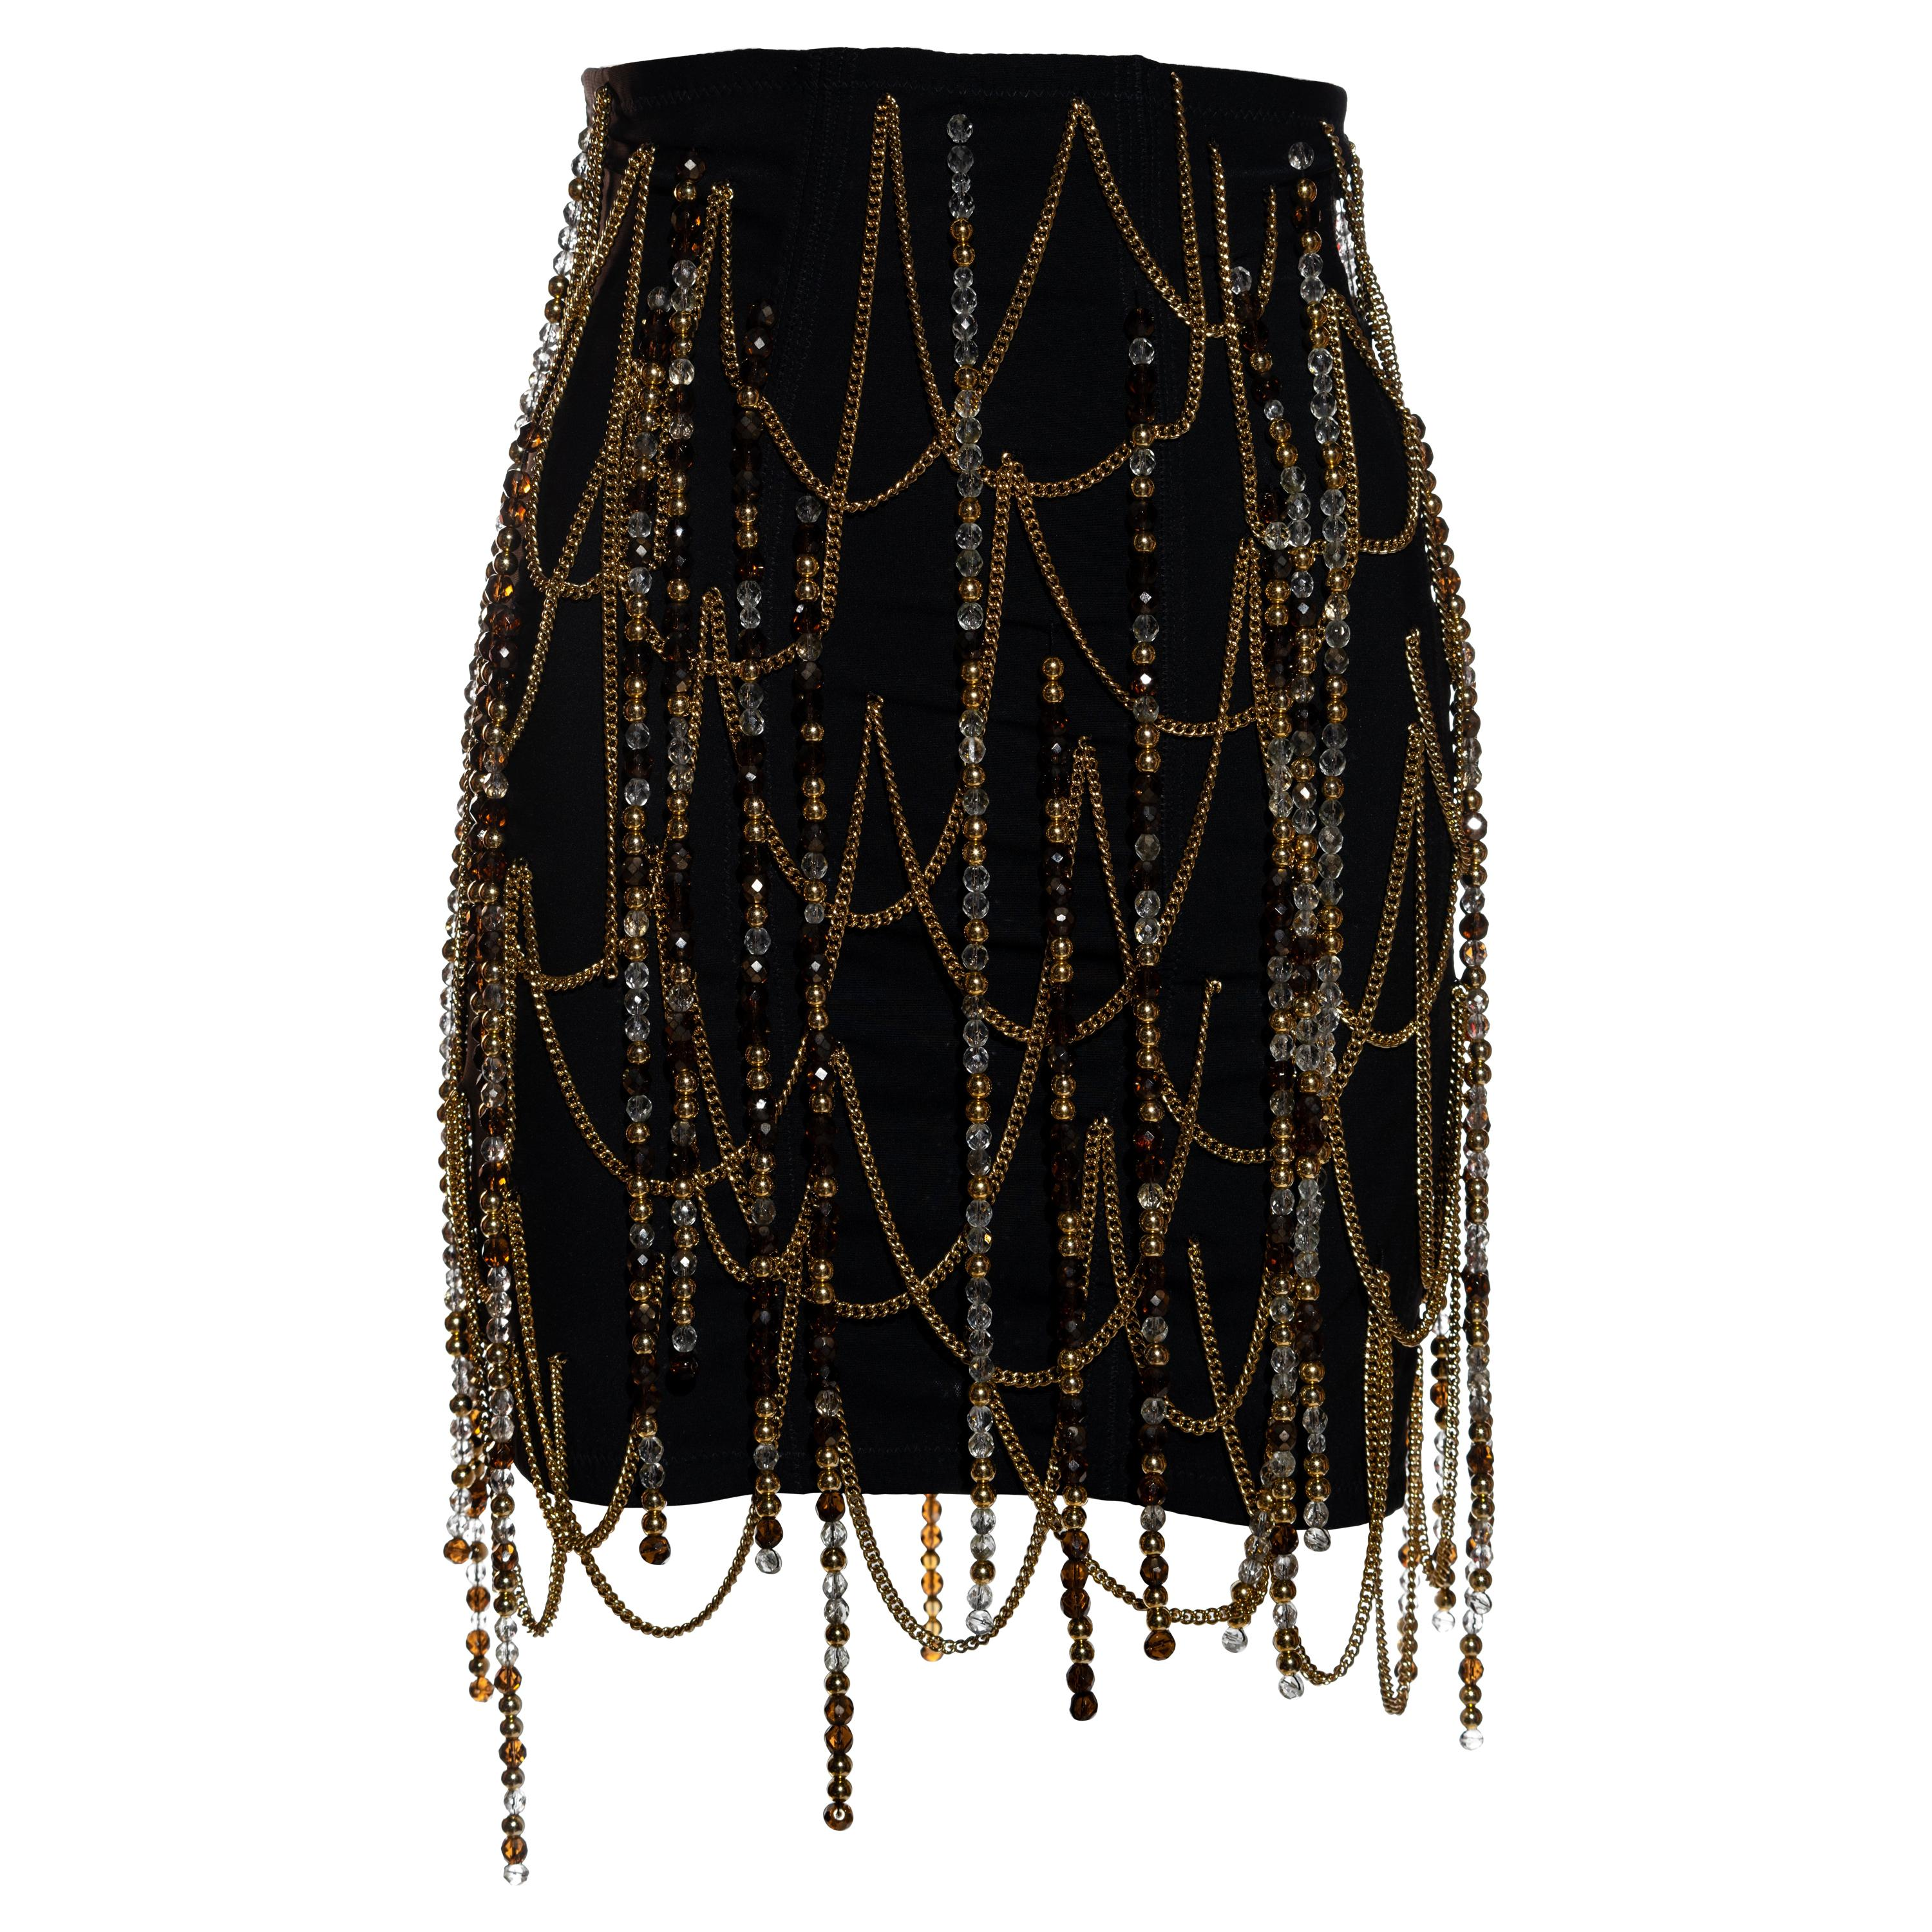 Dolce & Gabbana black corseted mini skirt with gold chains and beads, ss 1991